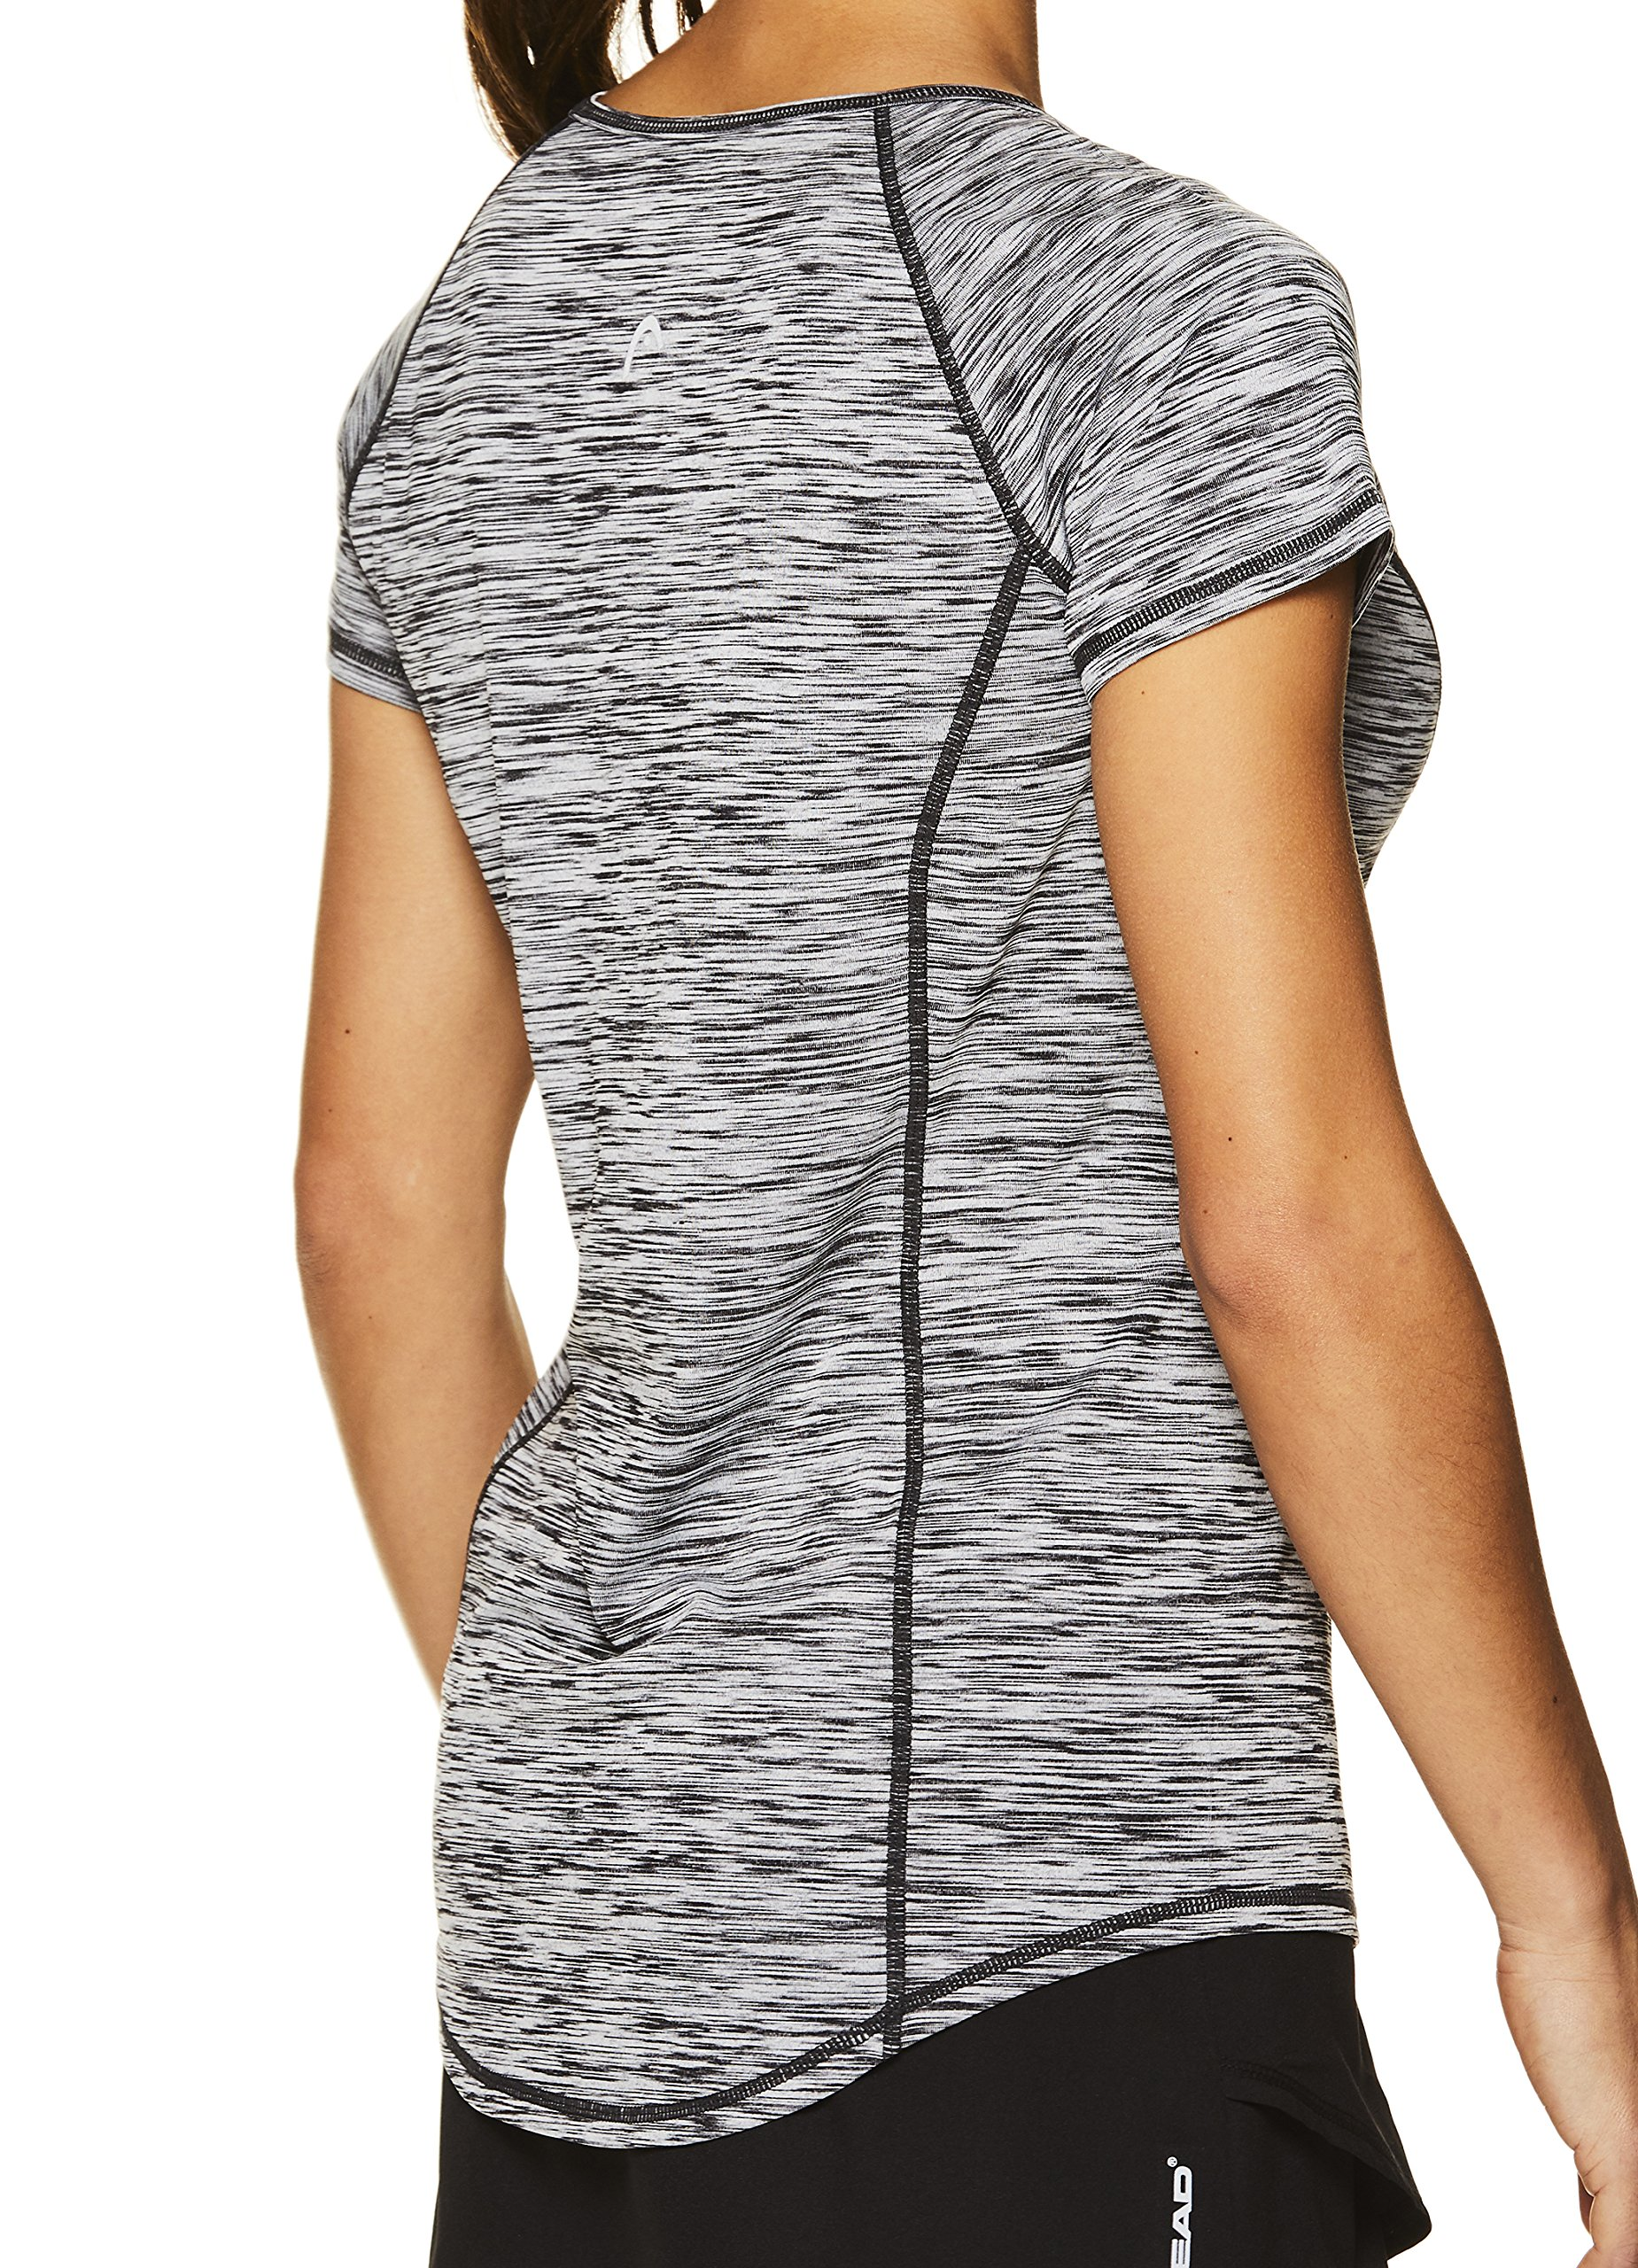 HEAD Women's Serena Short Sleeve Workout T-Shirt - Performance Crew Neck Activewear Top - Black Heather, X-Small by HEAD (Image #2)